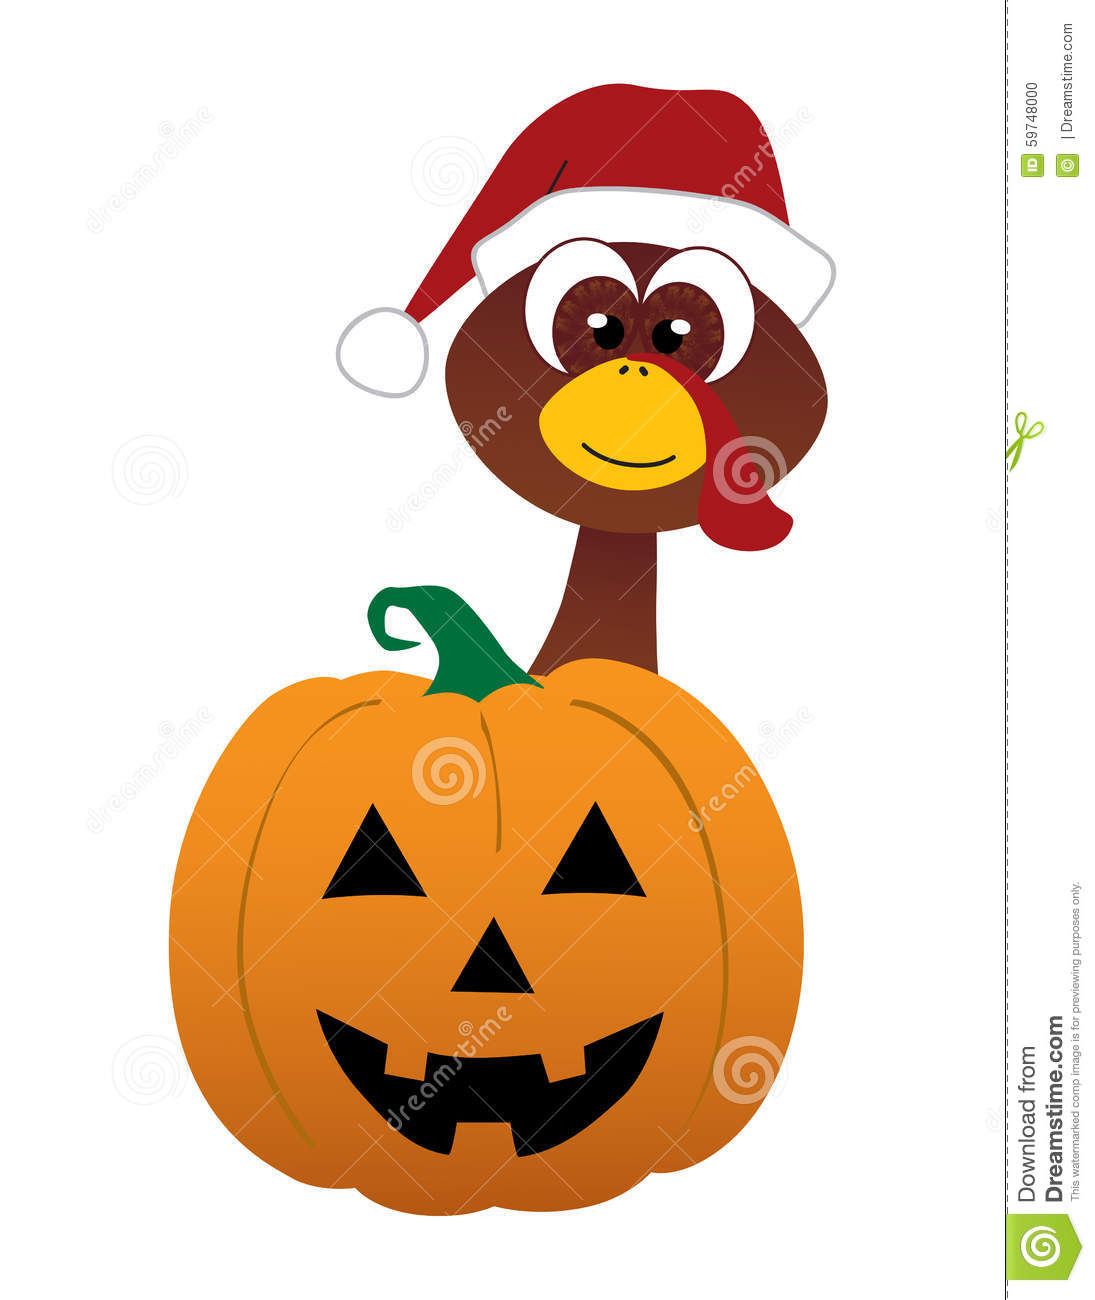 Picture Of Christmas Decorations The Holidays Are Around The Corner Stock Vector Image